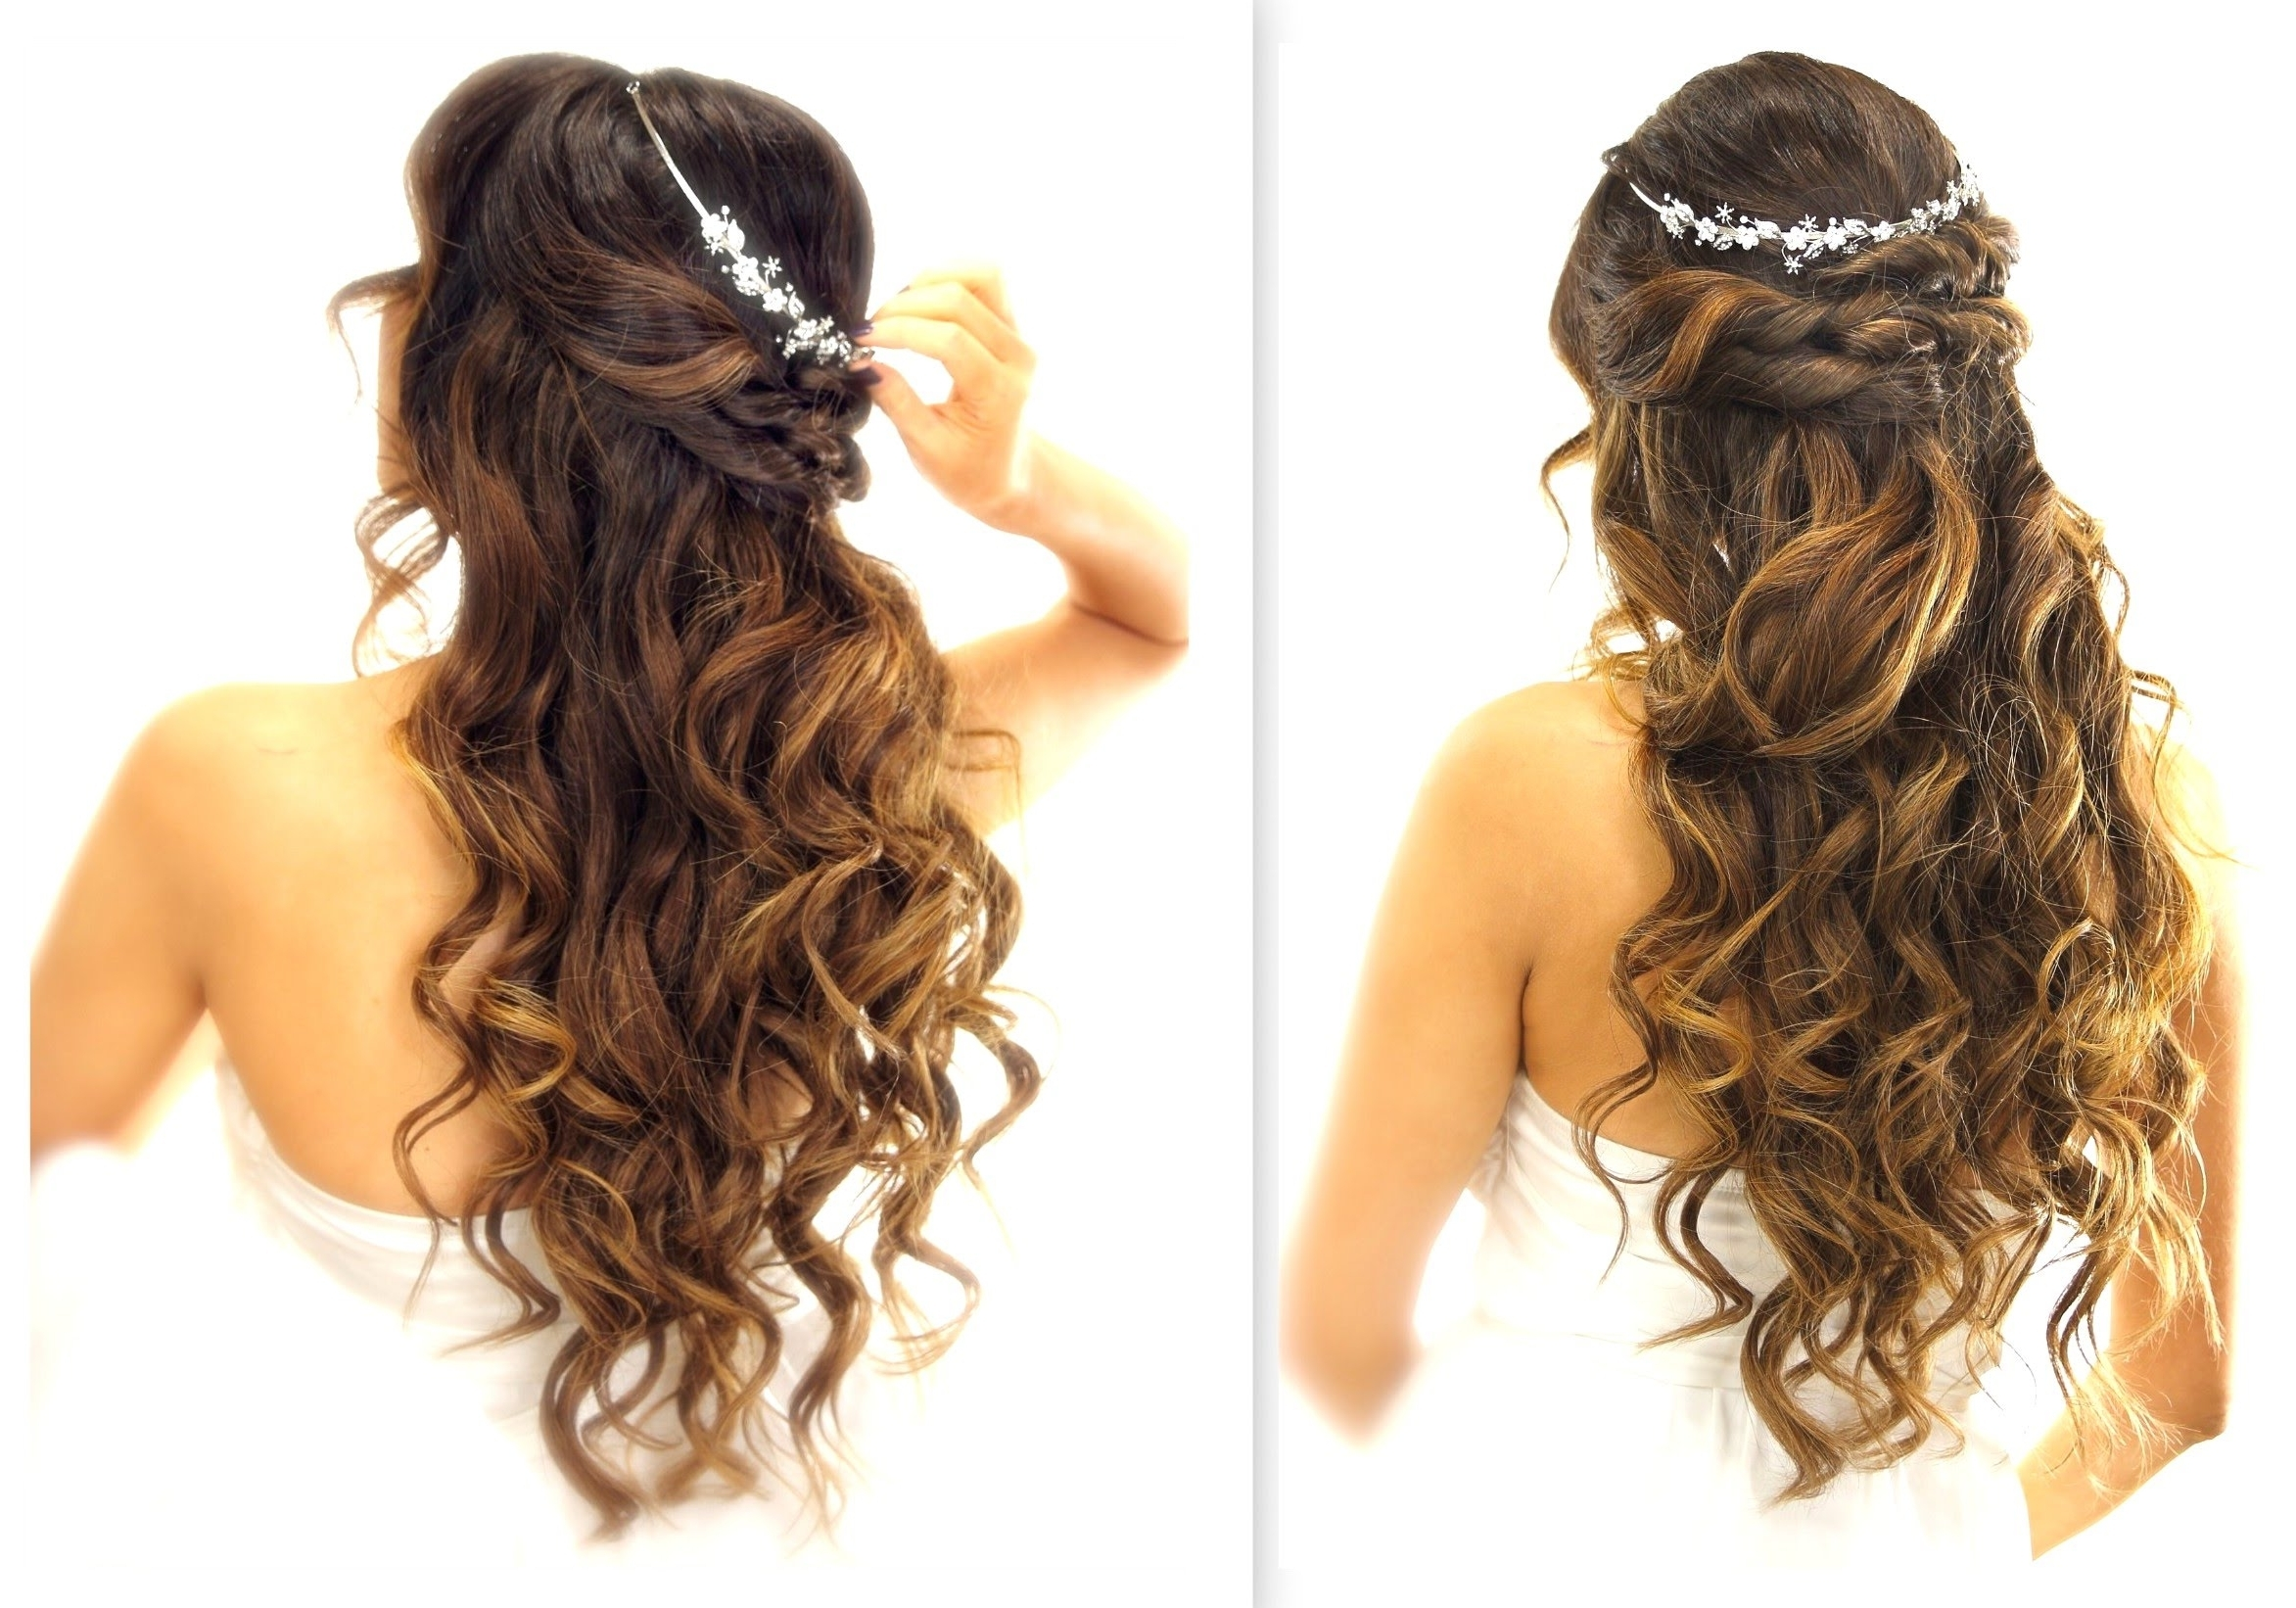 Bridal Hairstyles With Regard To Well Liked Wedding Hairstyles For Extra Long Hair (View 3 of 15)